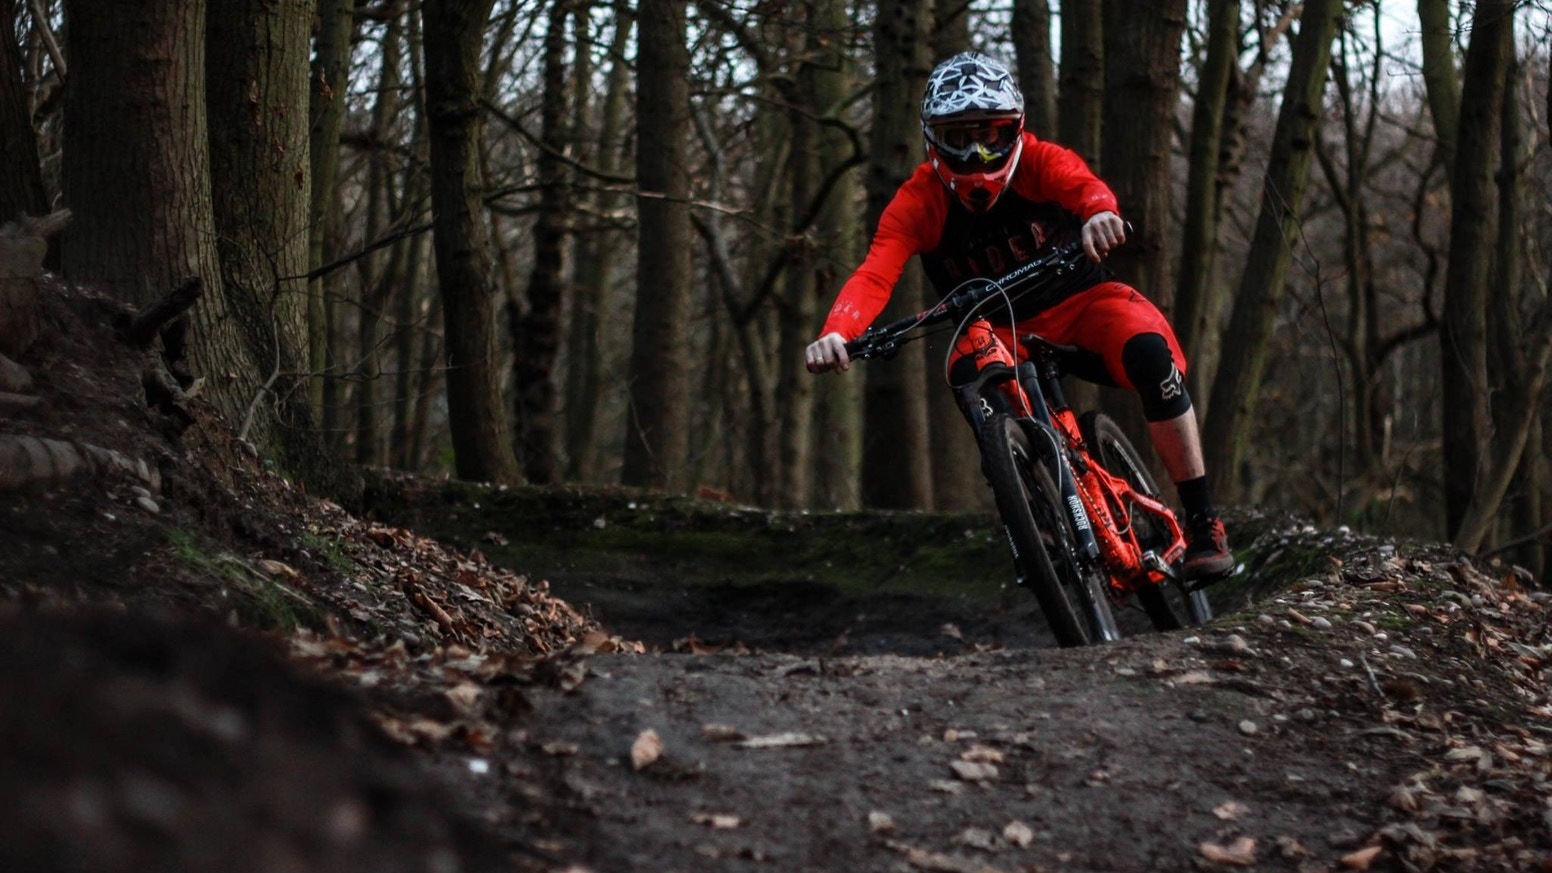 59b0b977b Introducing Flare Rider Co. Mountain Bike Clothing by Flare Rider Co ...